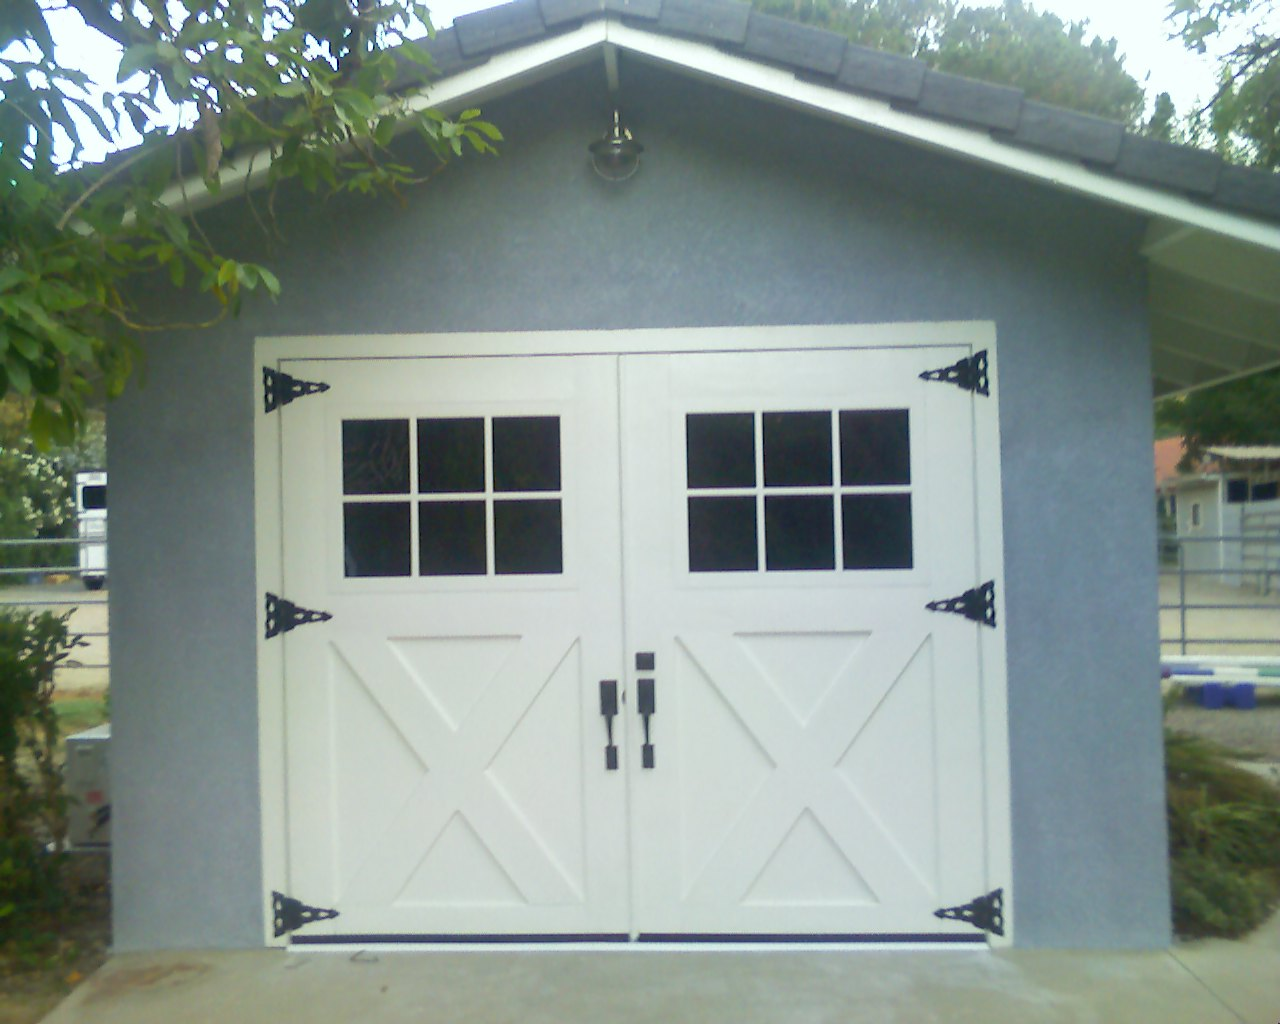 Barn Carriage House Garage Doors 1280 x 1024